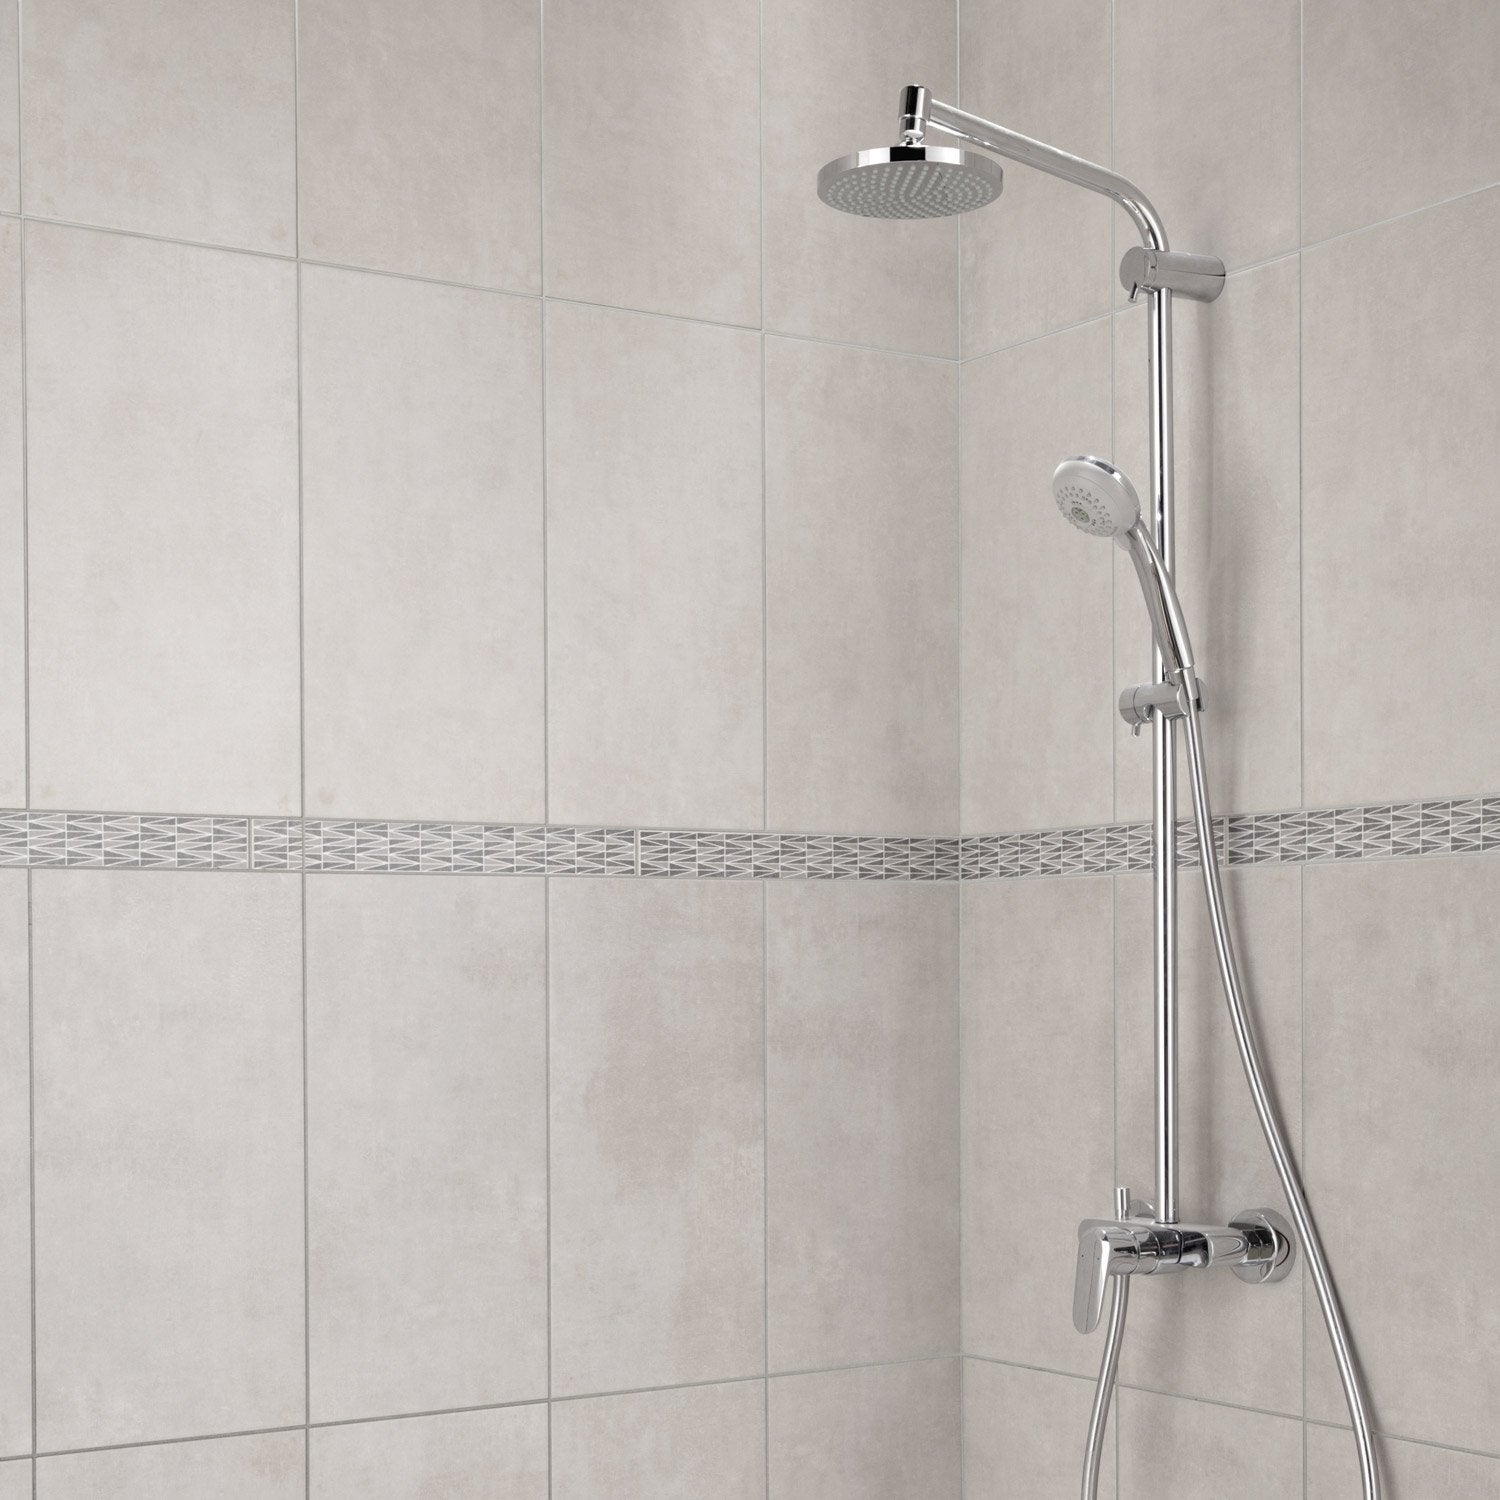 Fa ence mur gris smart x cm leroy merlin for Faience salle de bain gris clair